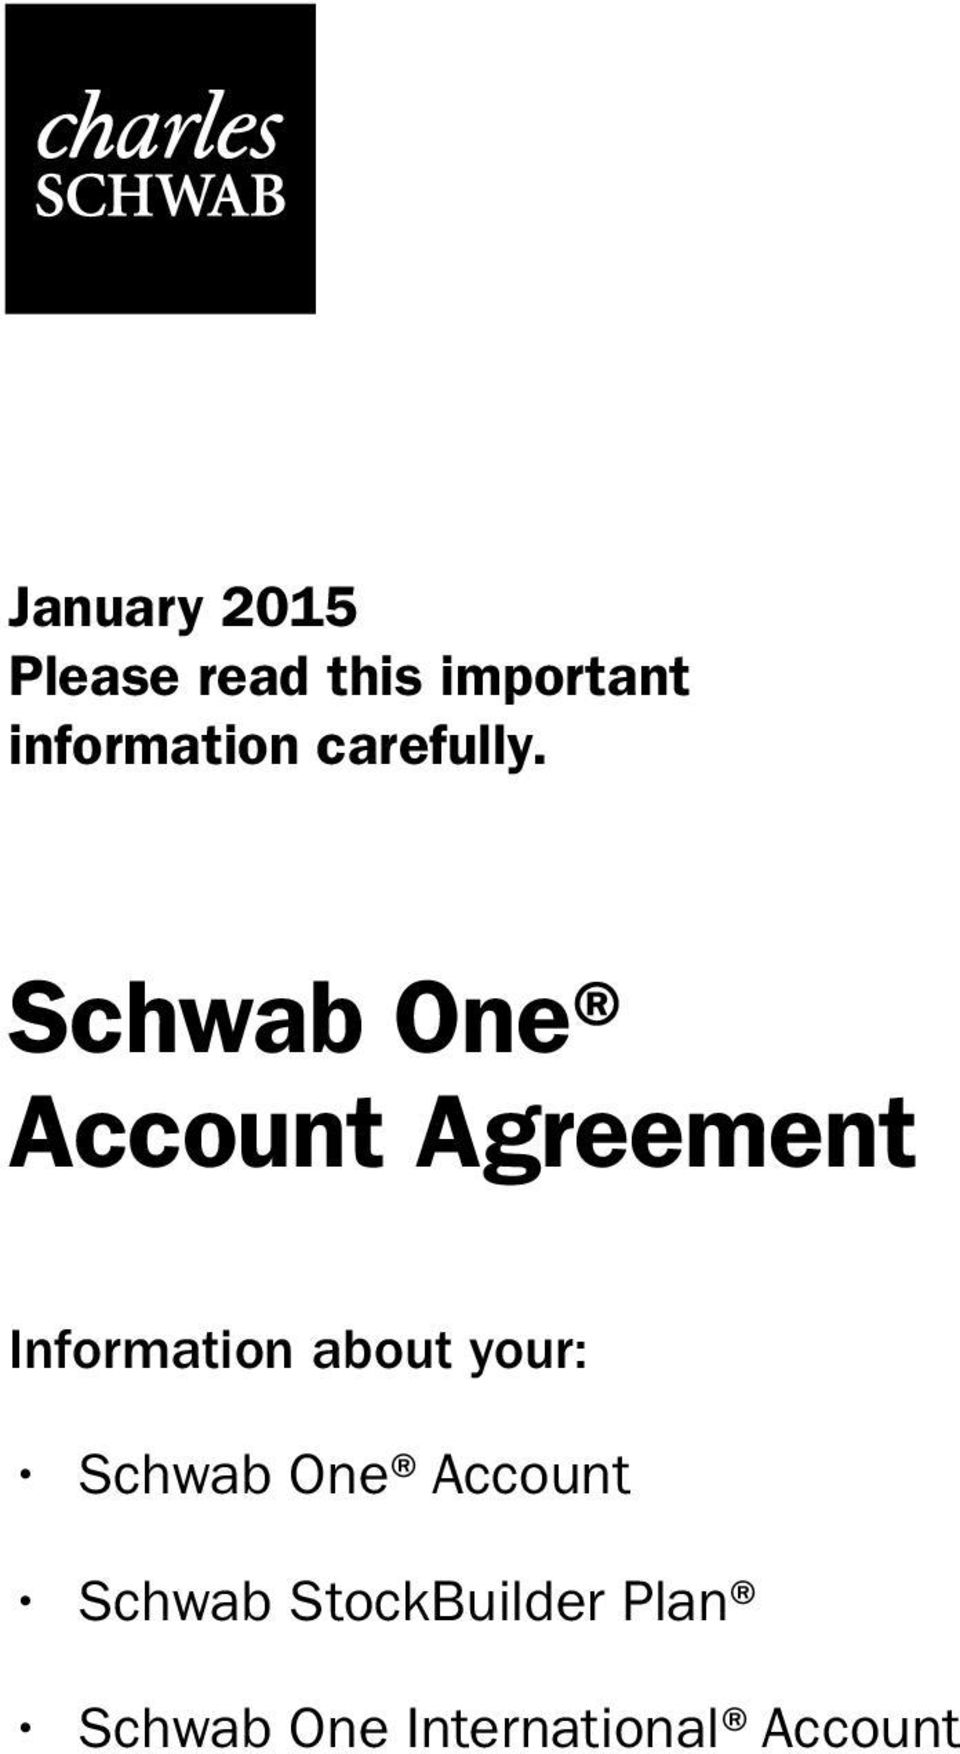 Schwab One Account Agreement Information about